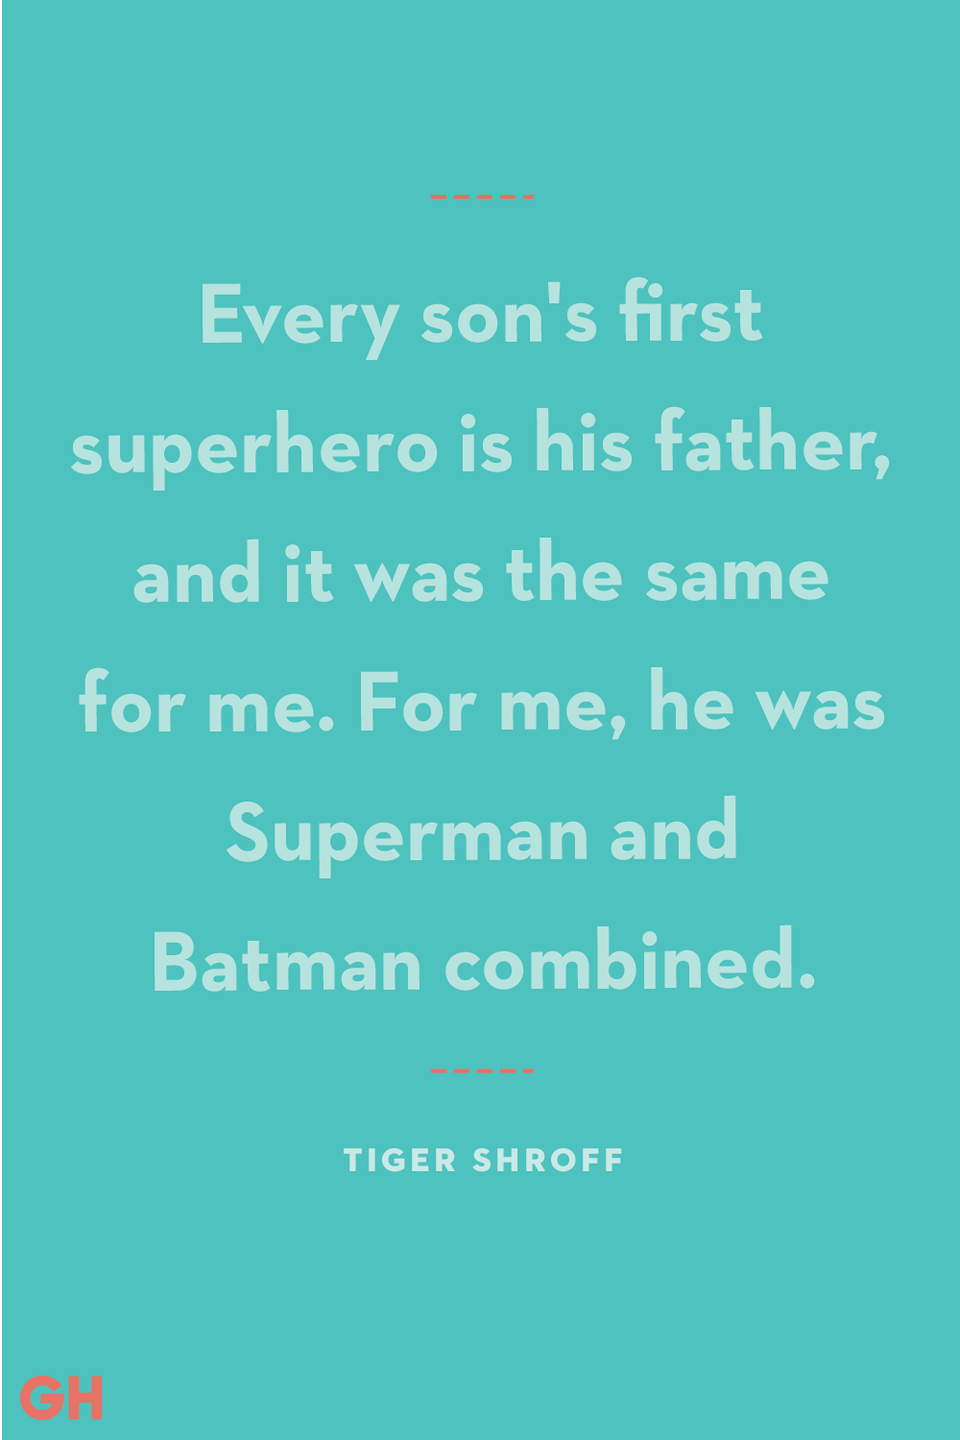 <p>Every son's first superhero is his father, and it was the same for me. For me, he was Superman and Batman combined.</p>